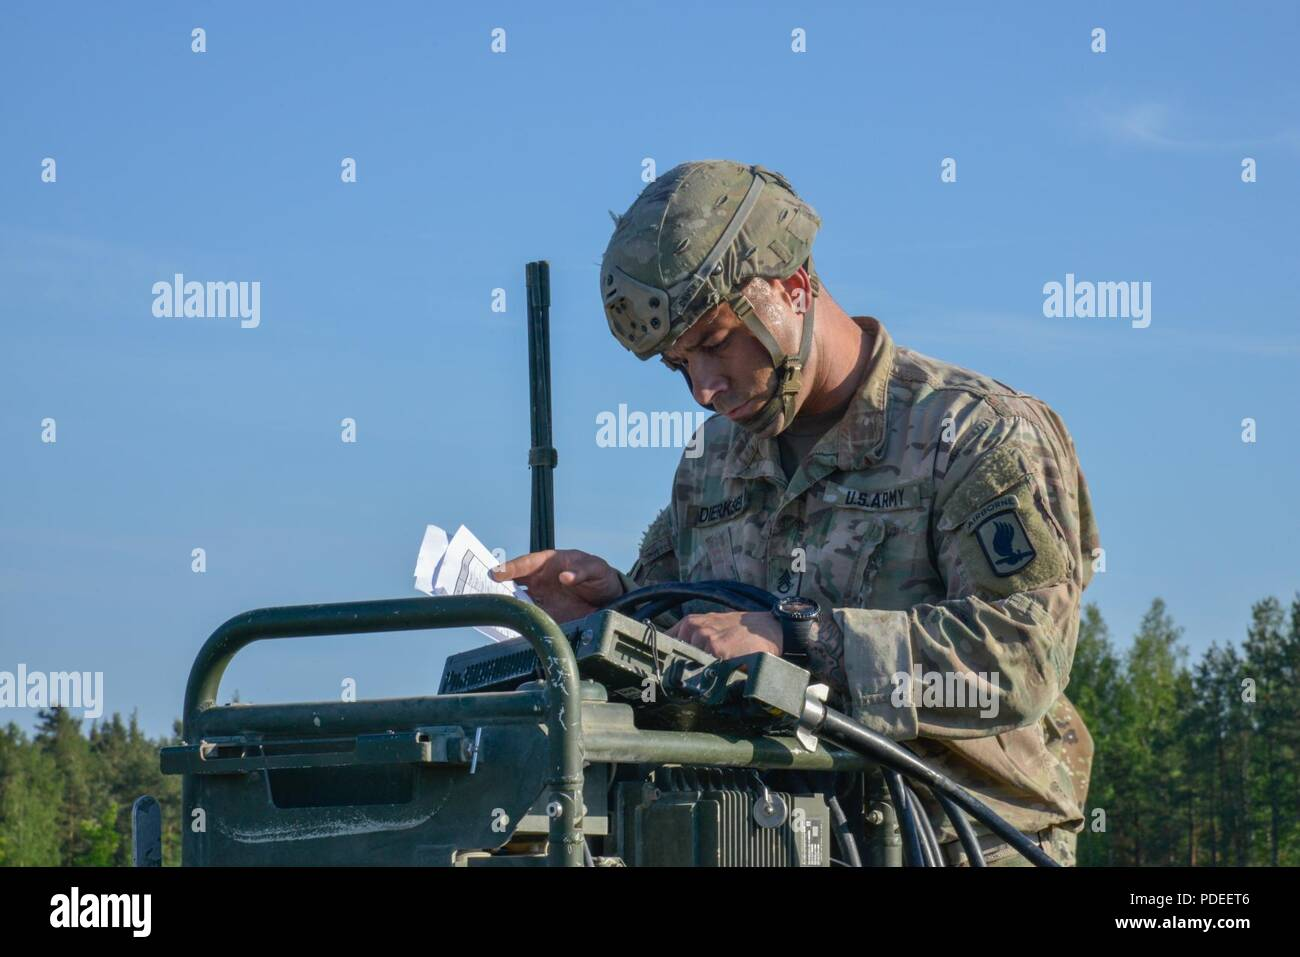 A Heavy Howitzer Stock Photos & A Heavy Howitzer Stock Images - Page